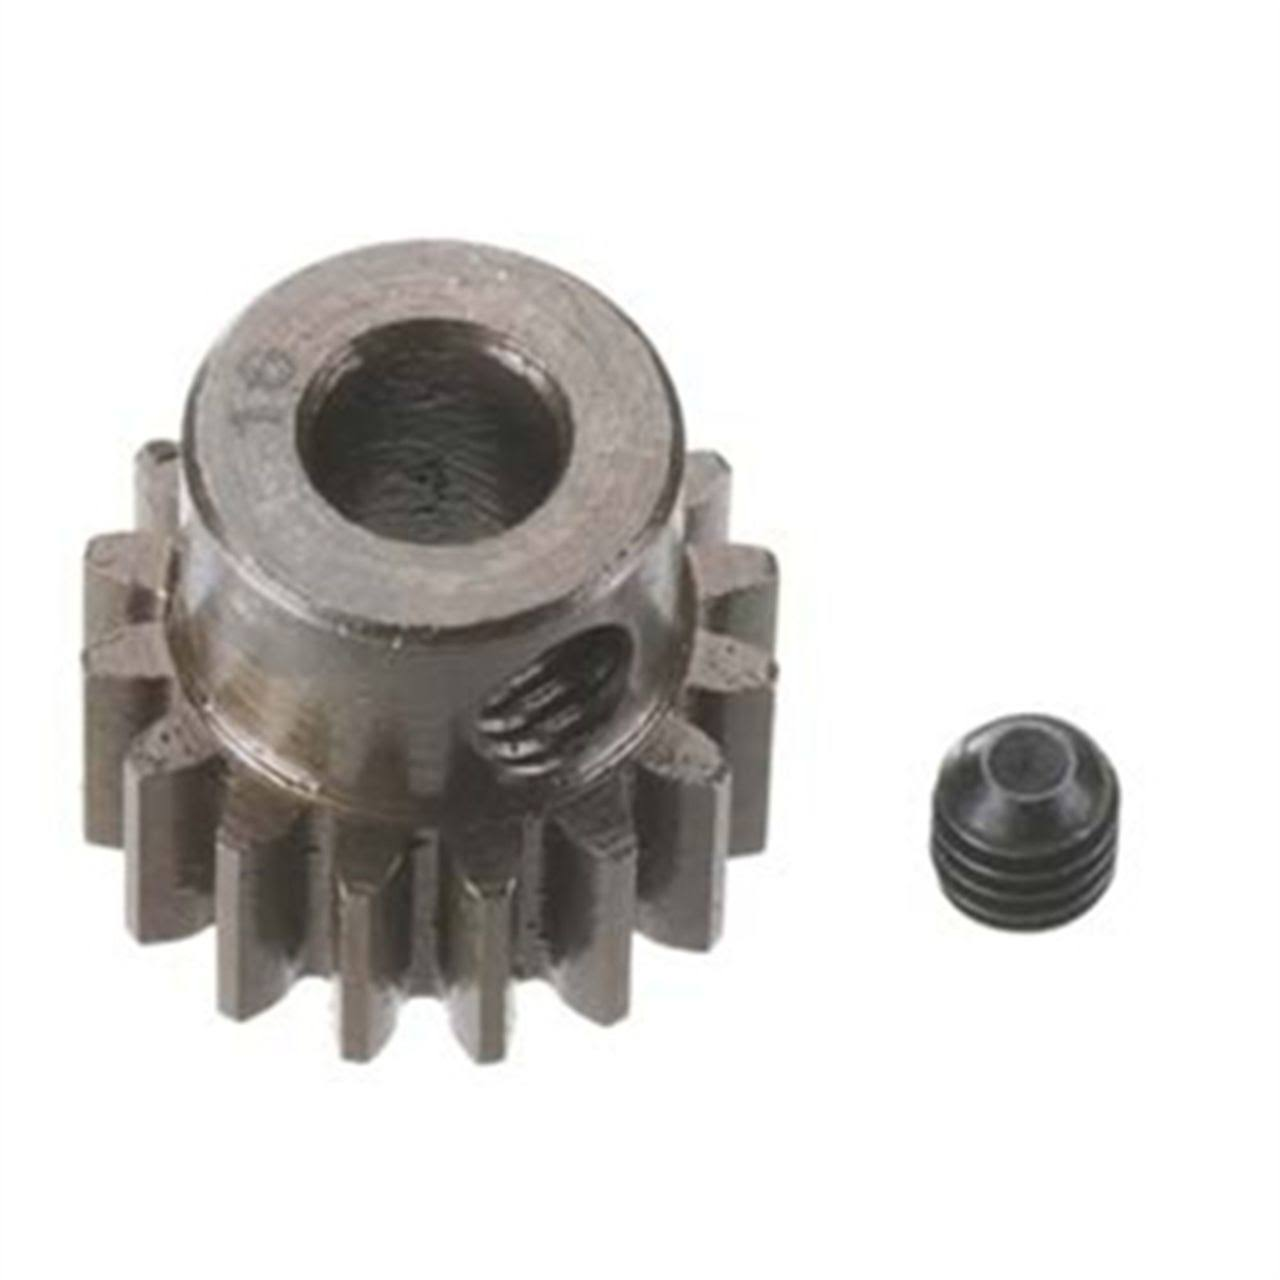 Robinson Racing MOD0.8 16T Extra Hard Steel Pinion Gear